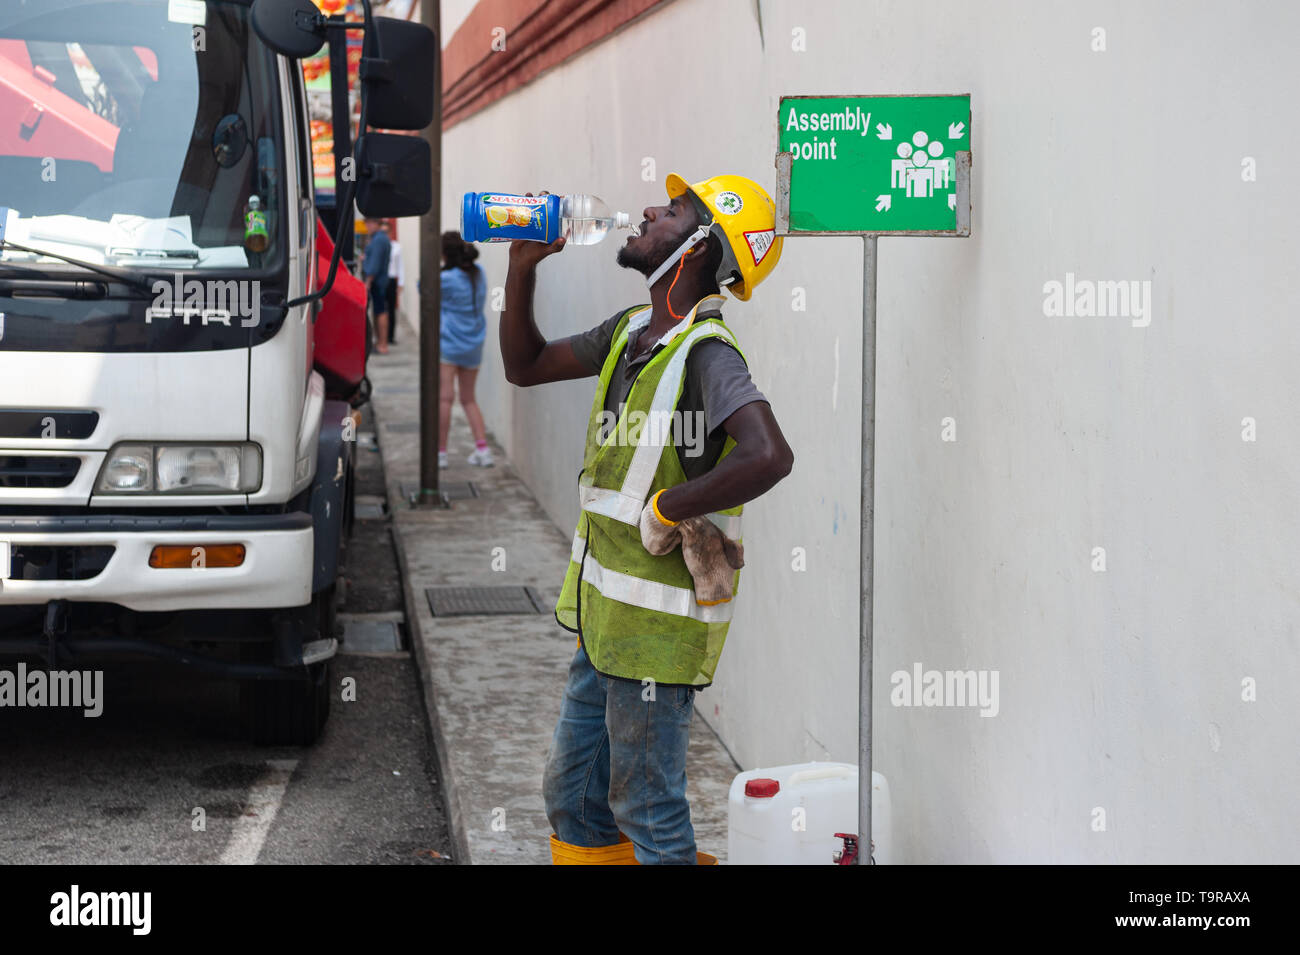 04.04.2018, Singapore, Republic of Singapore, Asia - A labourer is standing on the roadside in Chinatown drinking water from a bottle. - Stock Image